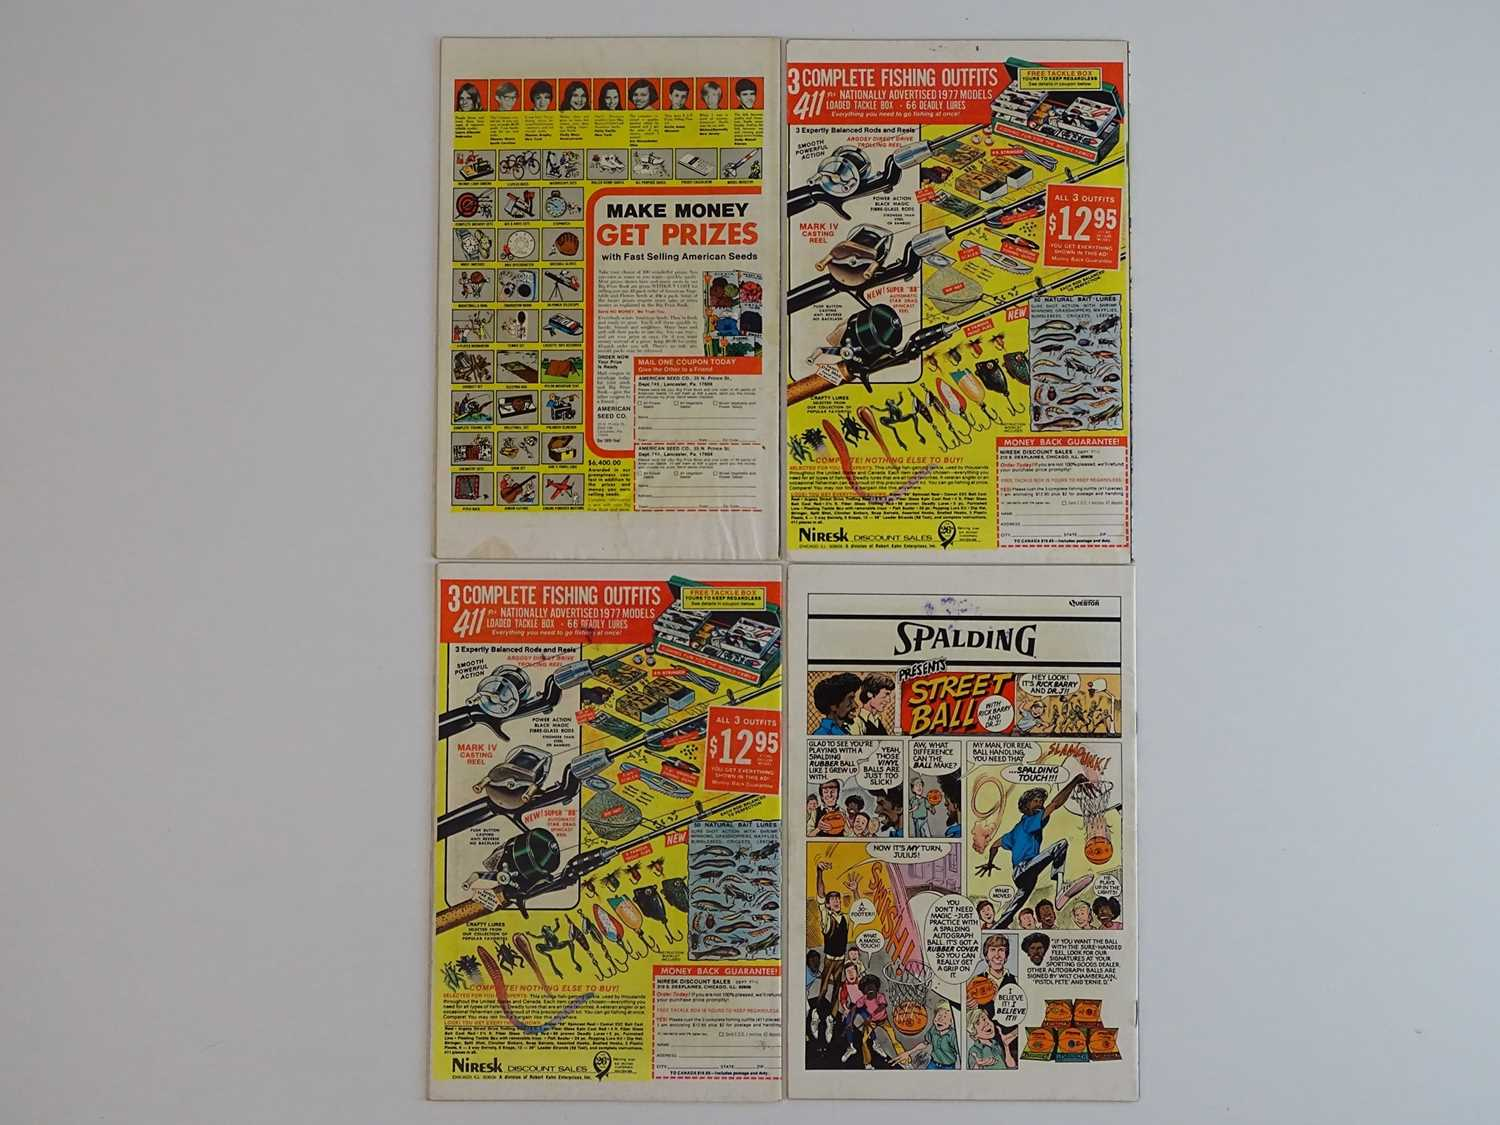 AMAZING SPIDER-MAN #167, 168, 169, 170 - (4 in Lot) - (1977 - MARVEL) - Includes First appearance of - Image 2 of 2